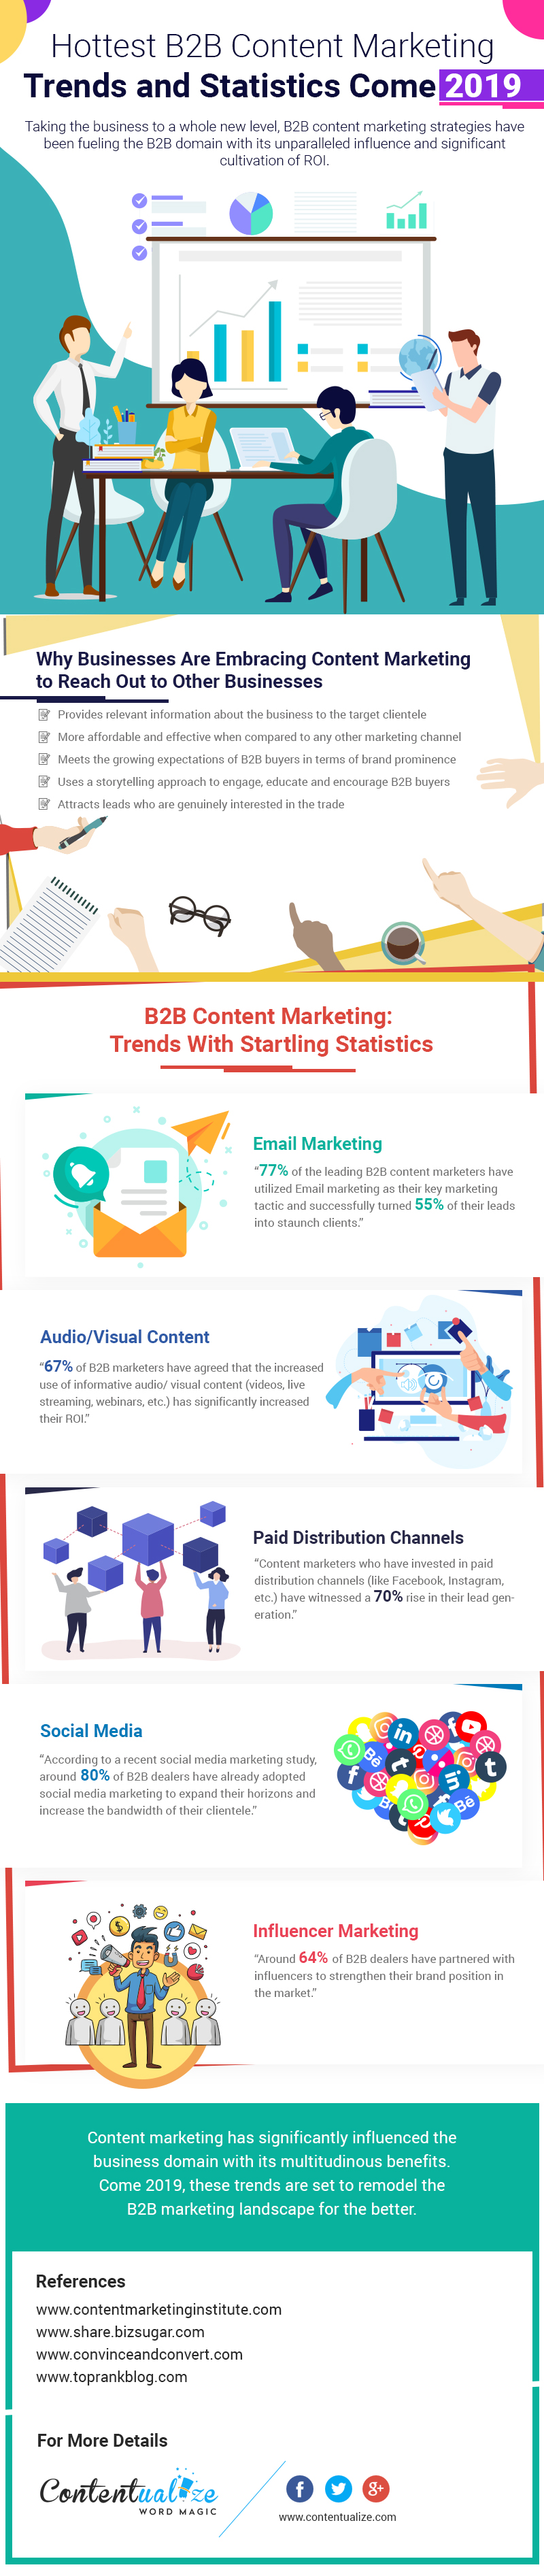 Infographic - Hottest B2B Content Marketing Trends and Statistics in 2019